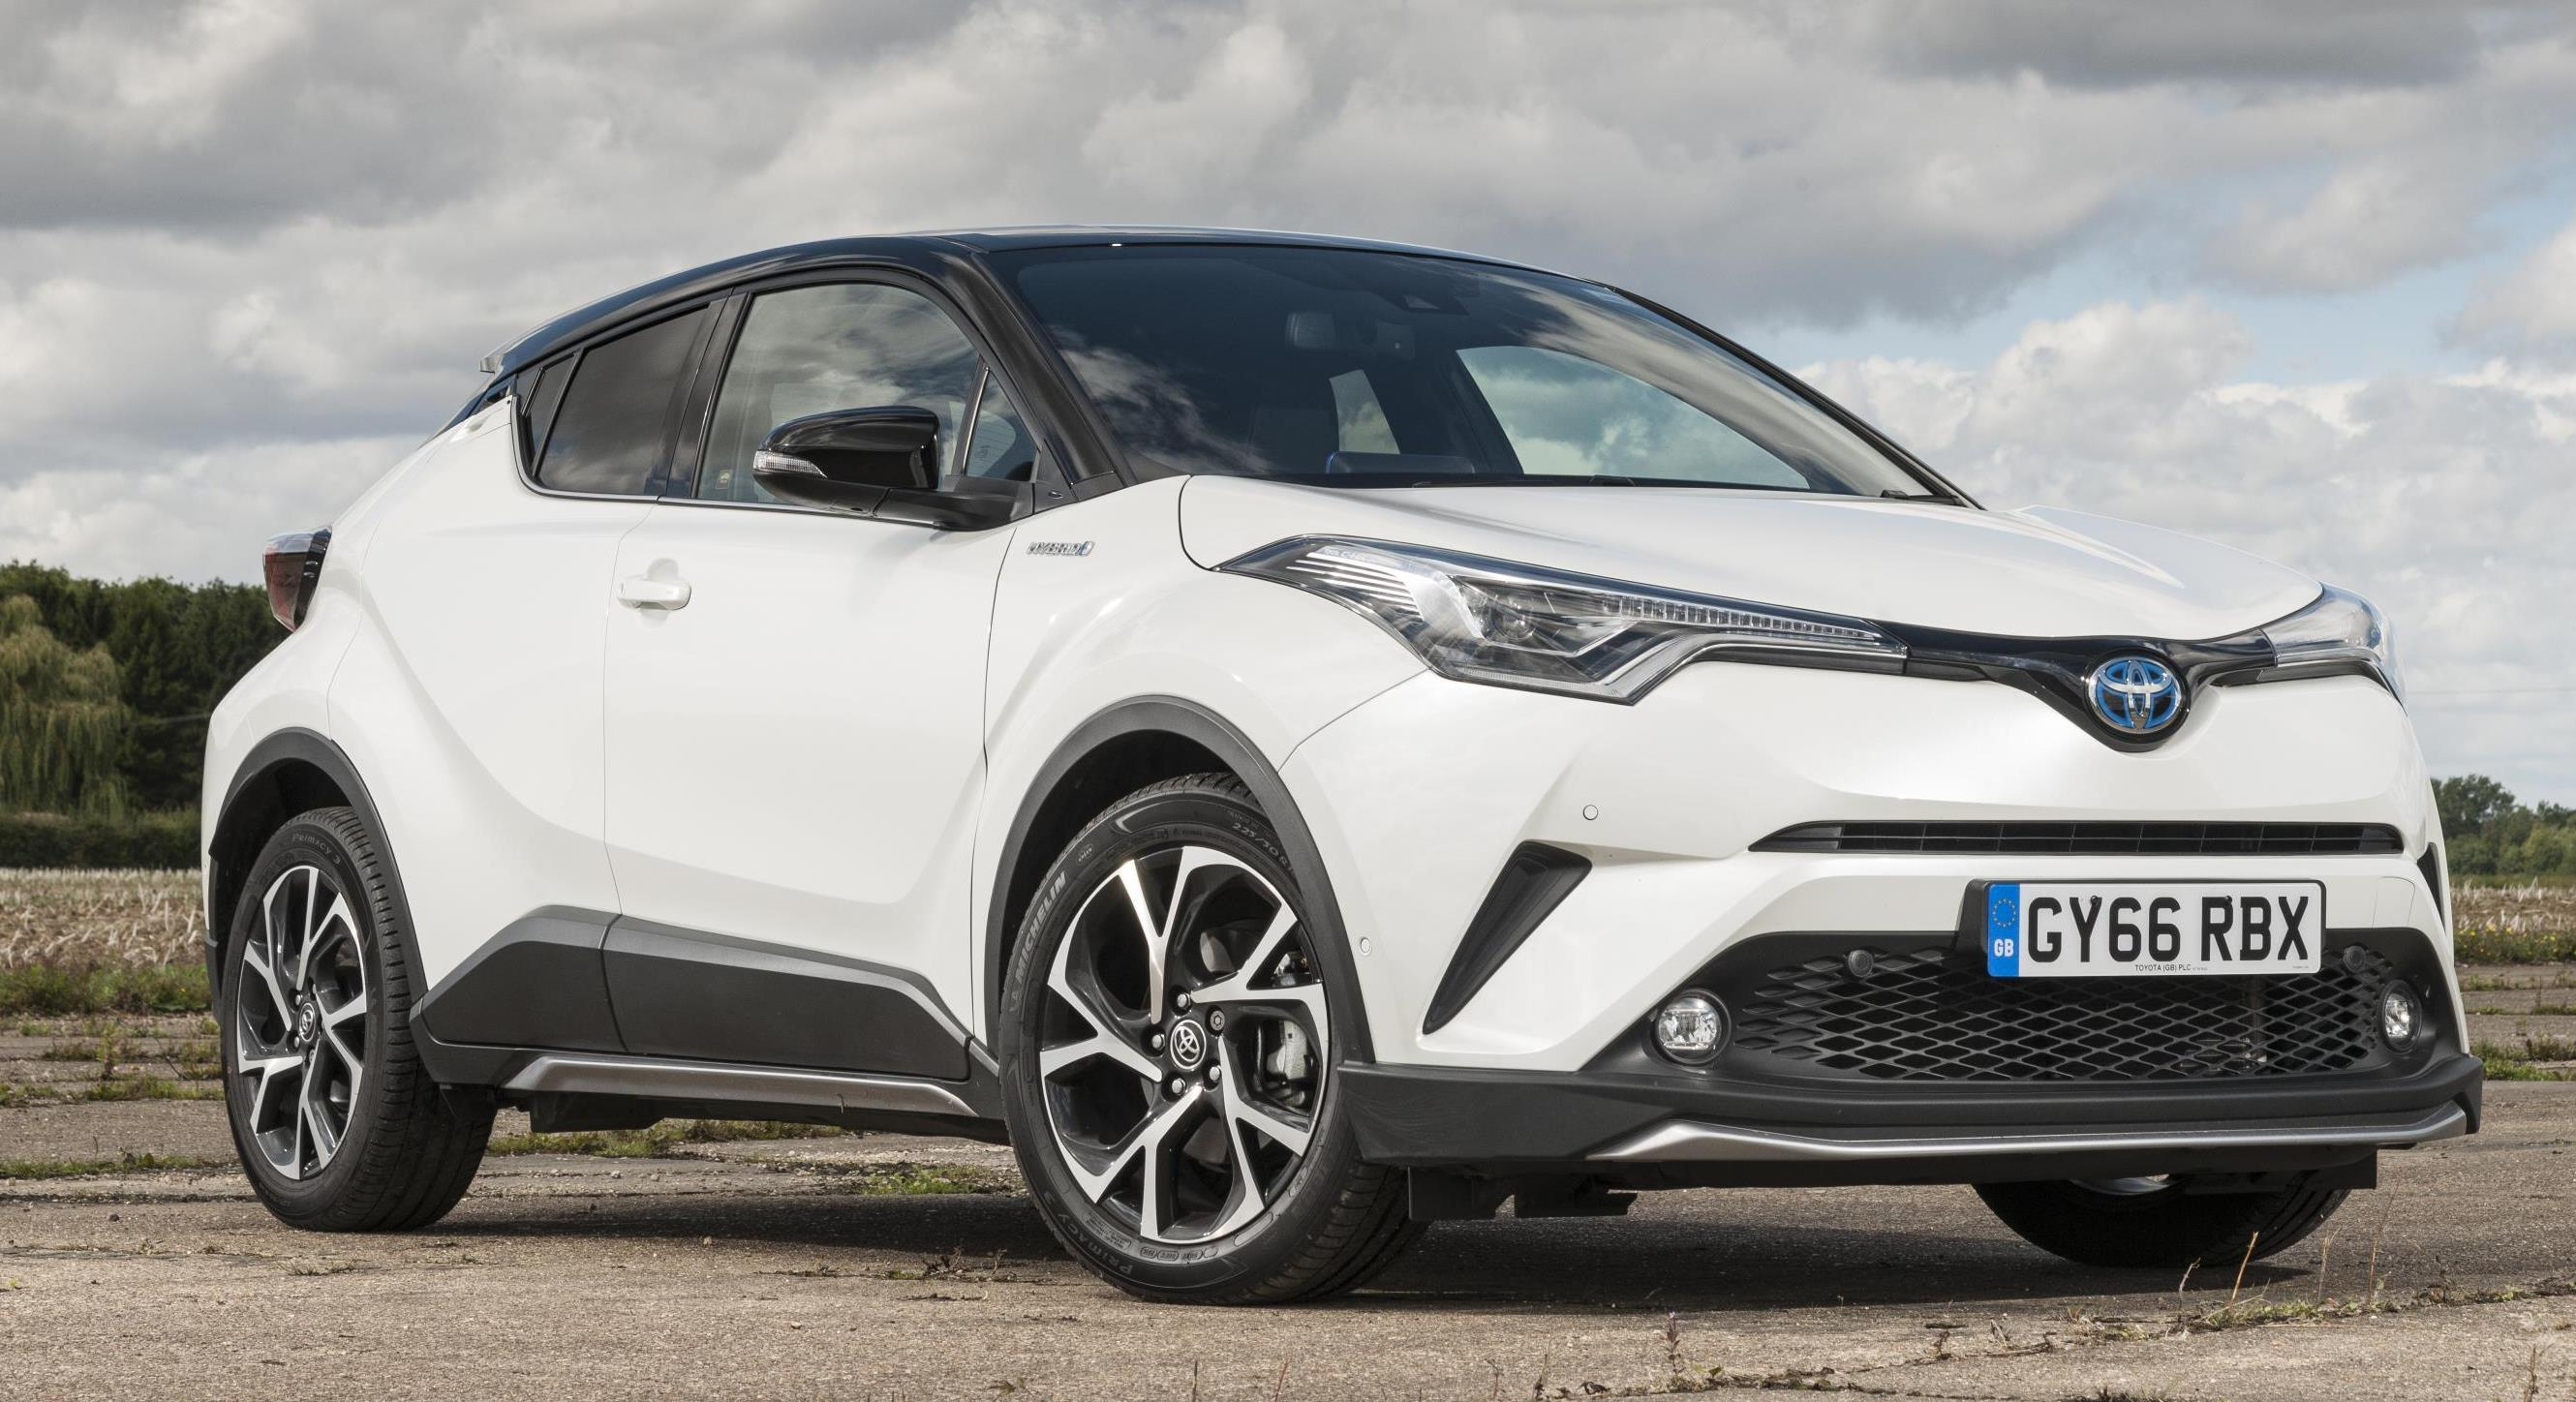 New Toyota Crossover 2017 >> Parkers.co.uk Awards Toyota C-Hr New Car of The Year 2018 - The Leader Newspaper